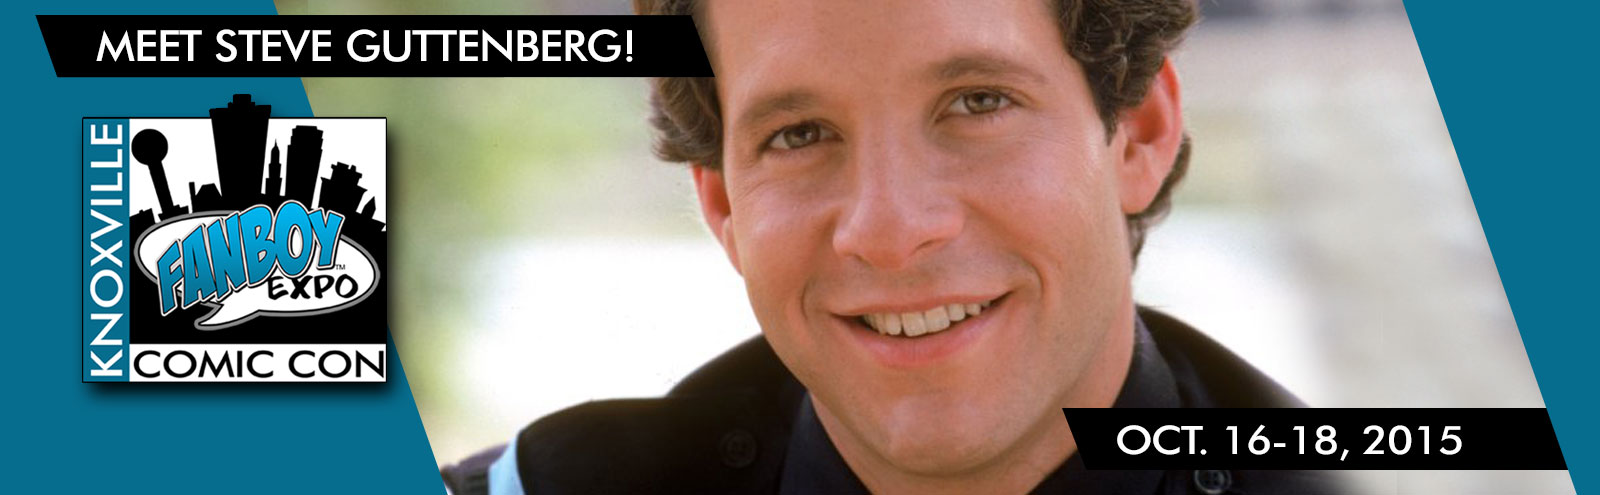 featured-steveguttenberg